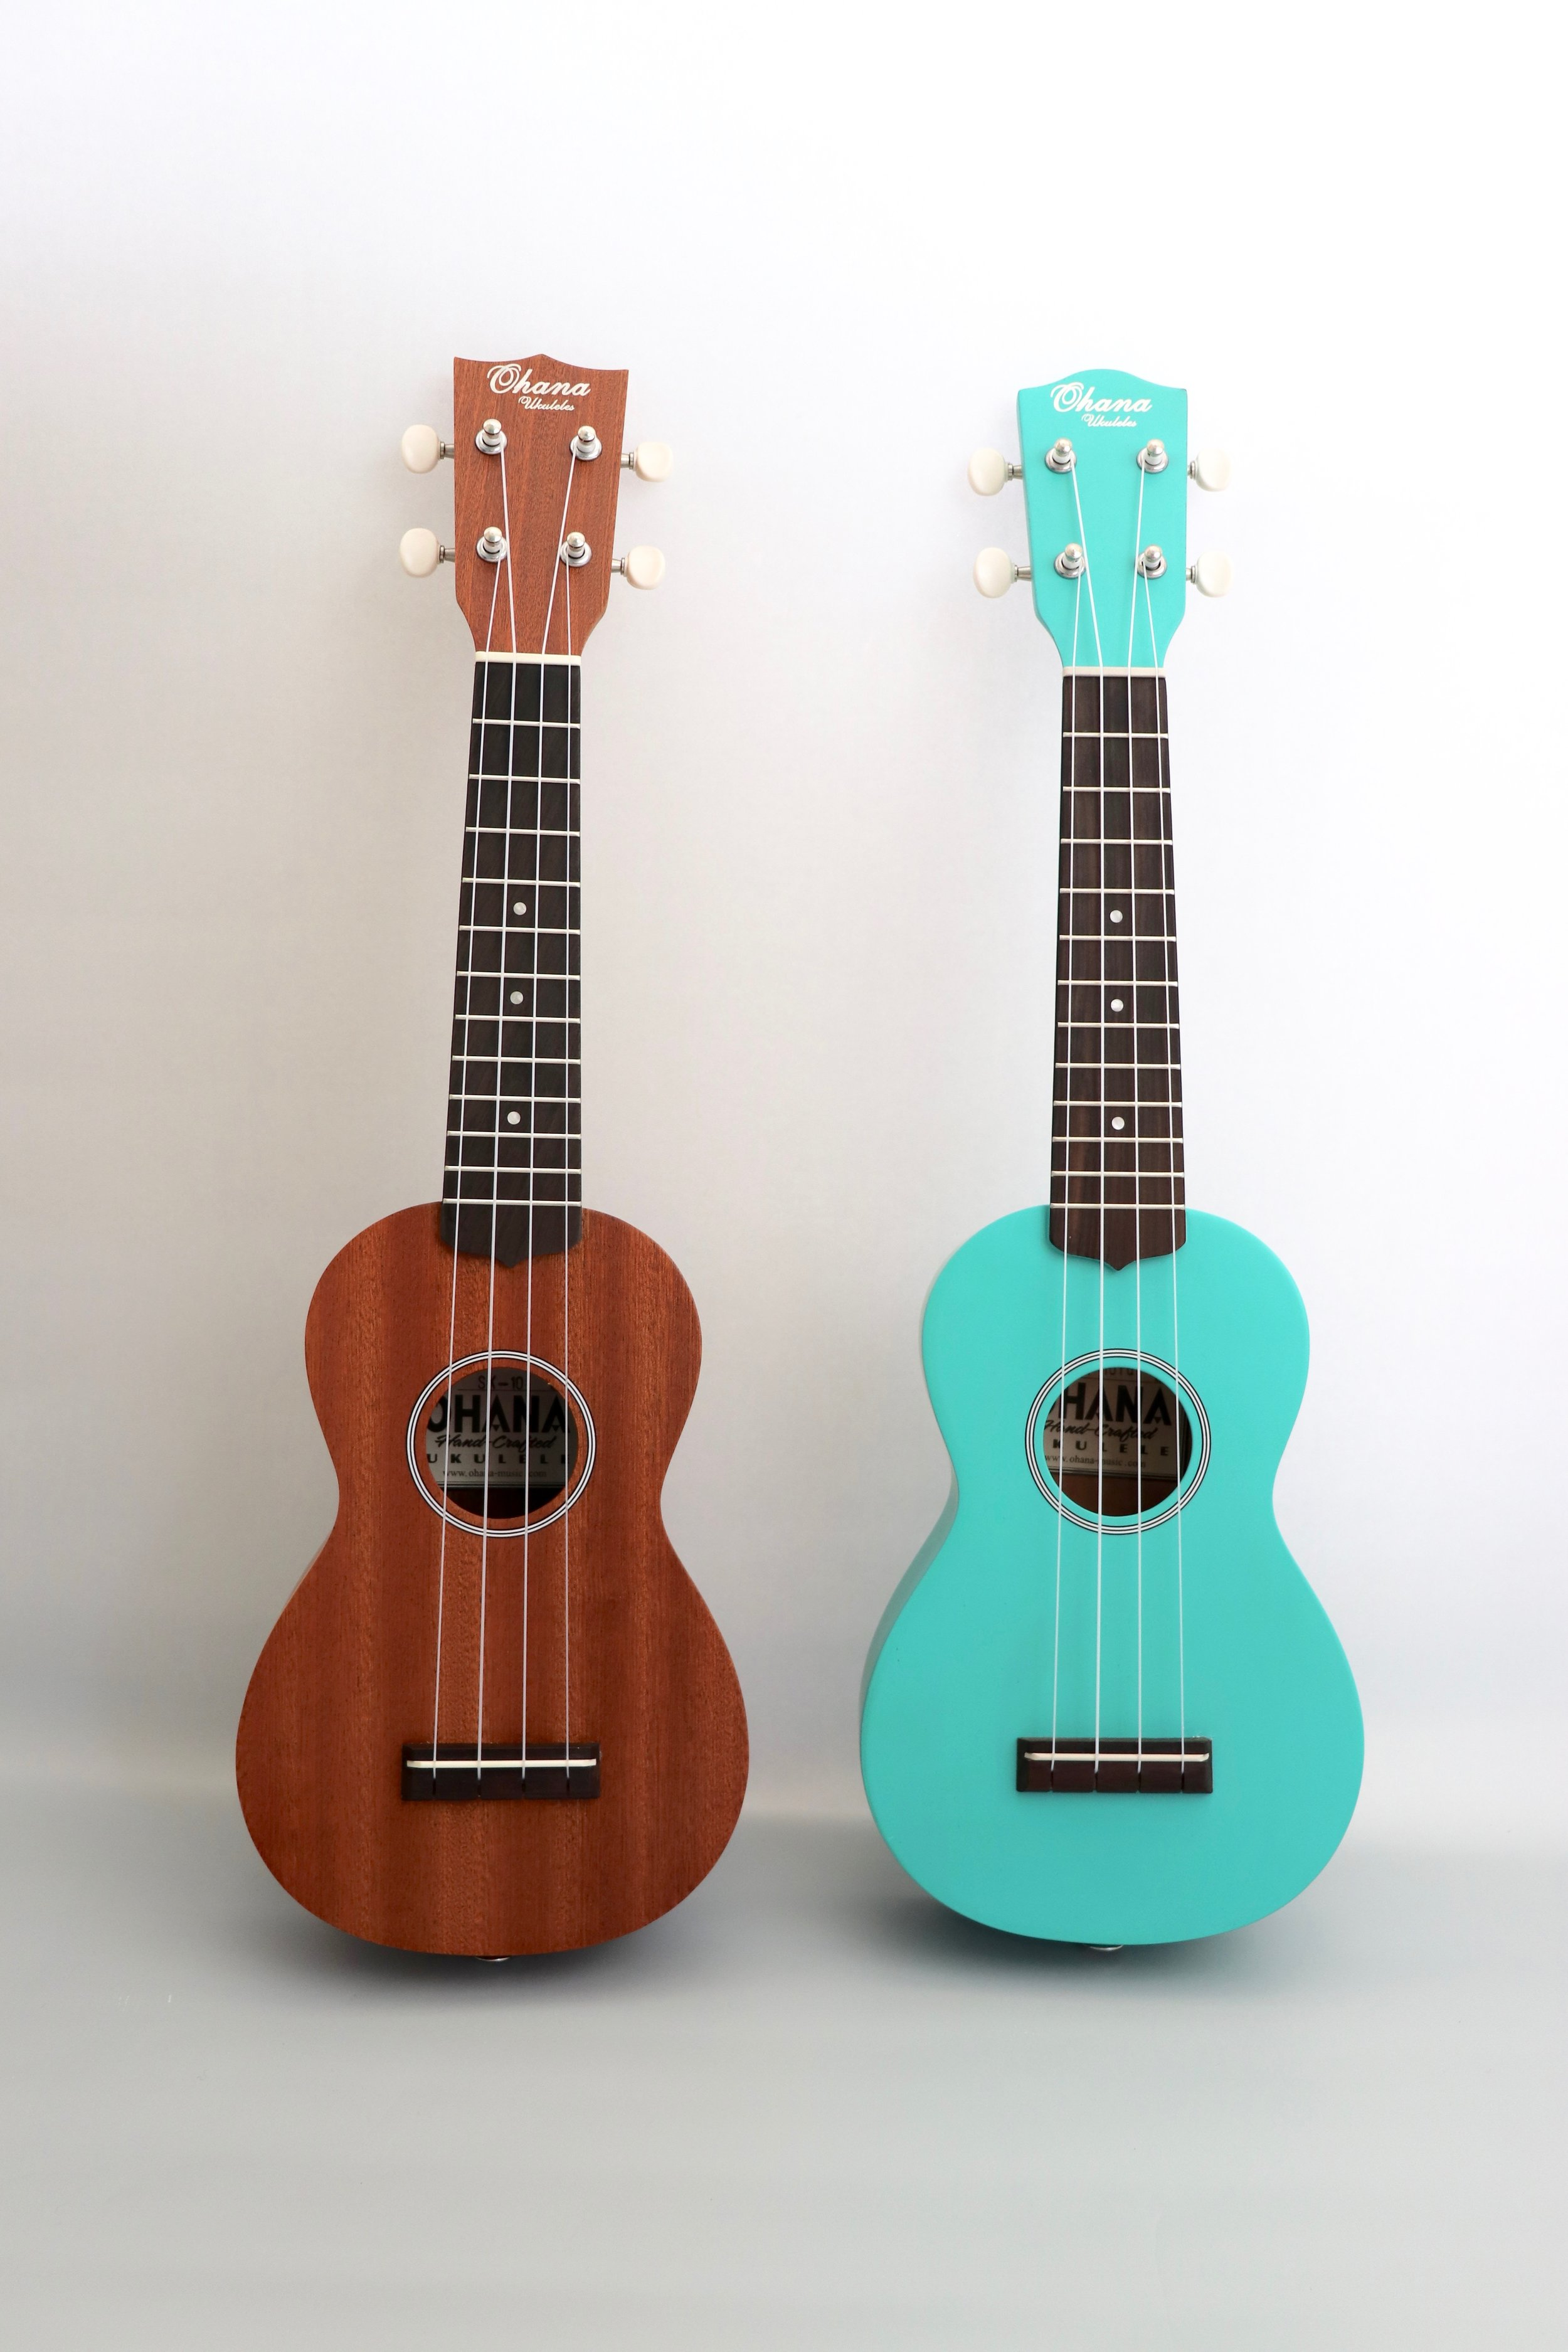 The  Ohana SK-10 ukulele starter kits , available in wood tone and turquoise